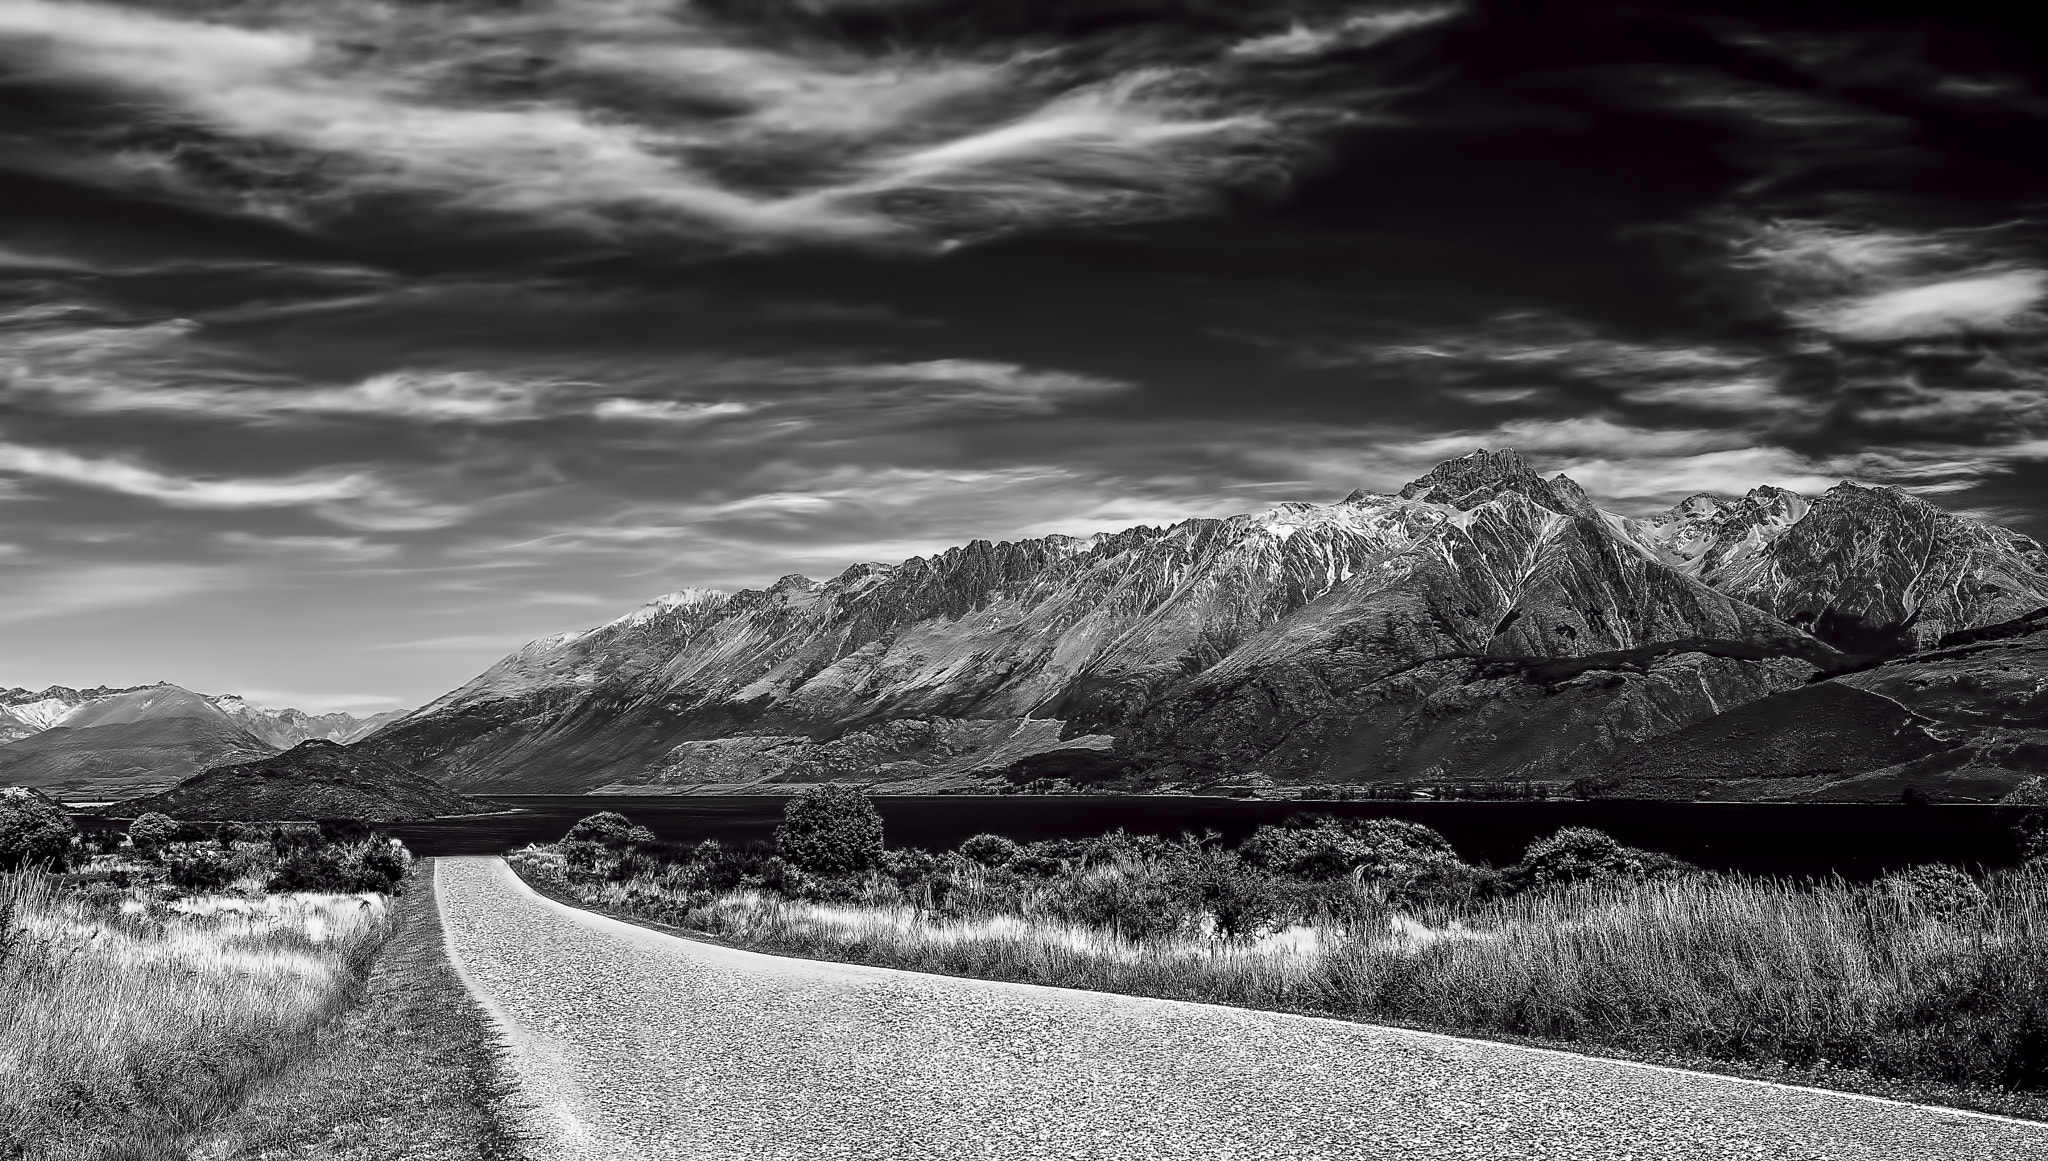 Photograph Road to Nowhere by Margaret Morgan on 500px